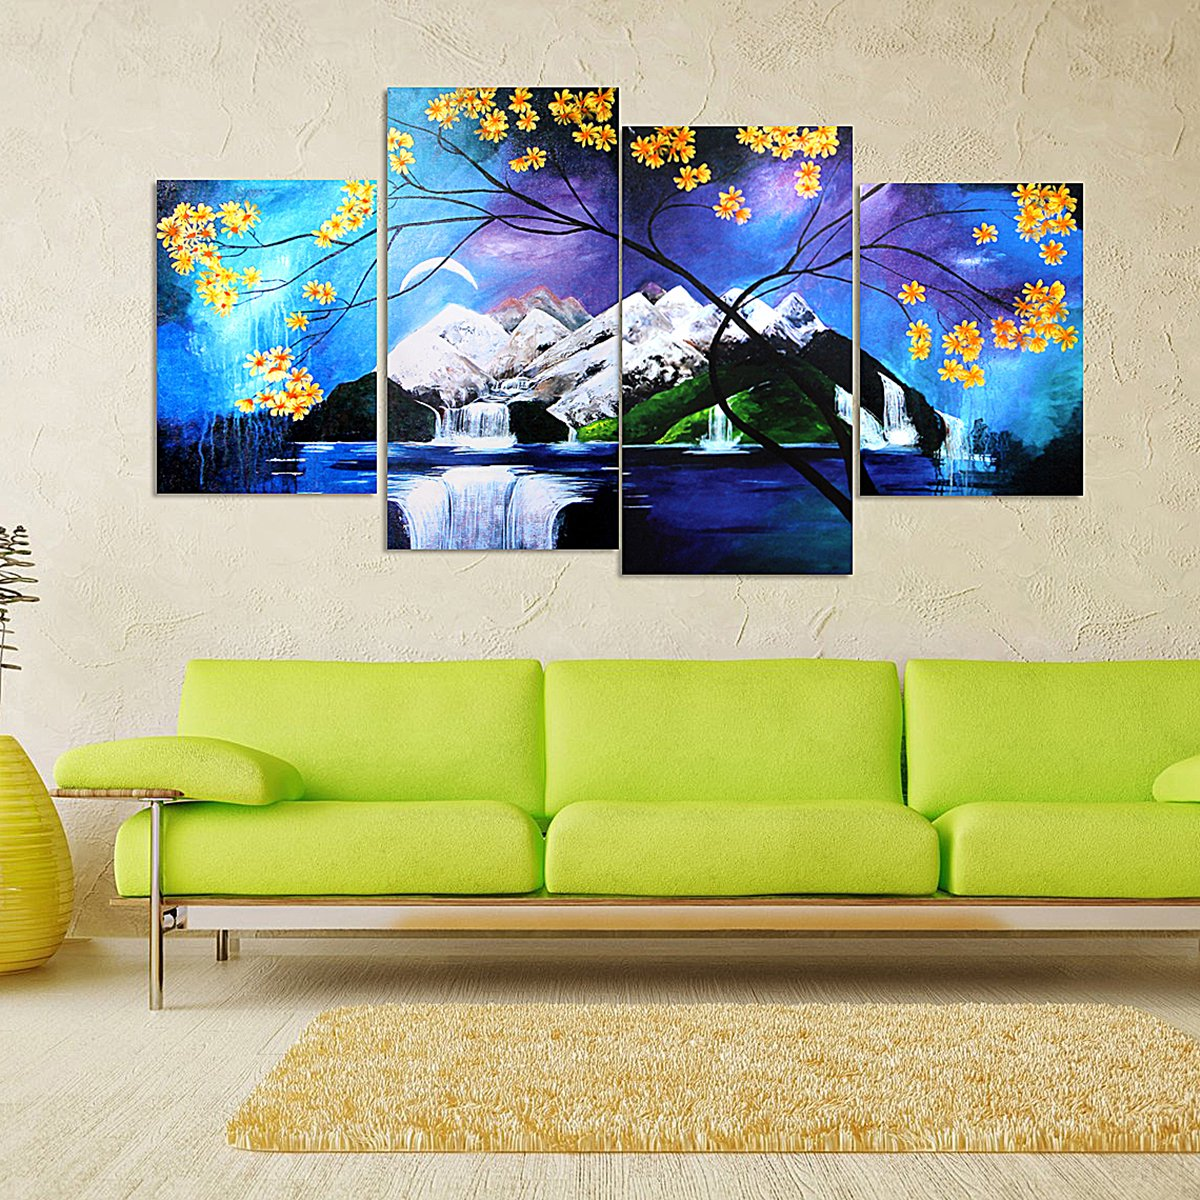 Frameless Painting Picture Canvas Modern Wall Decor Unframed